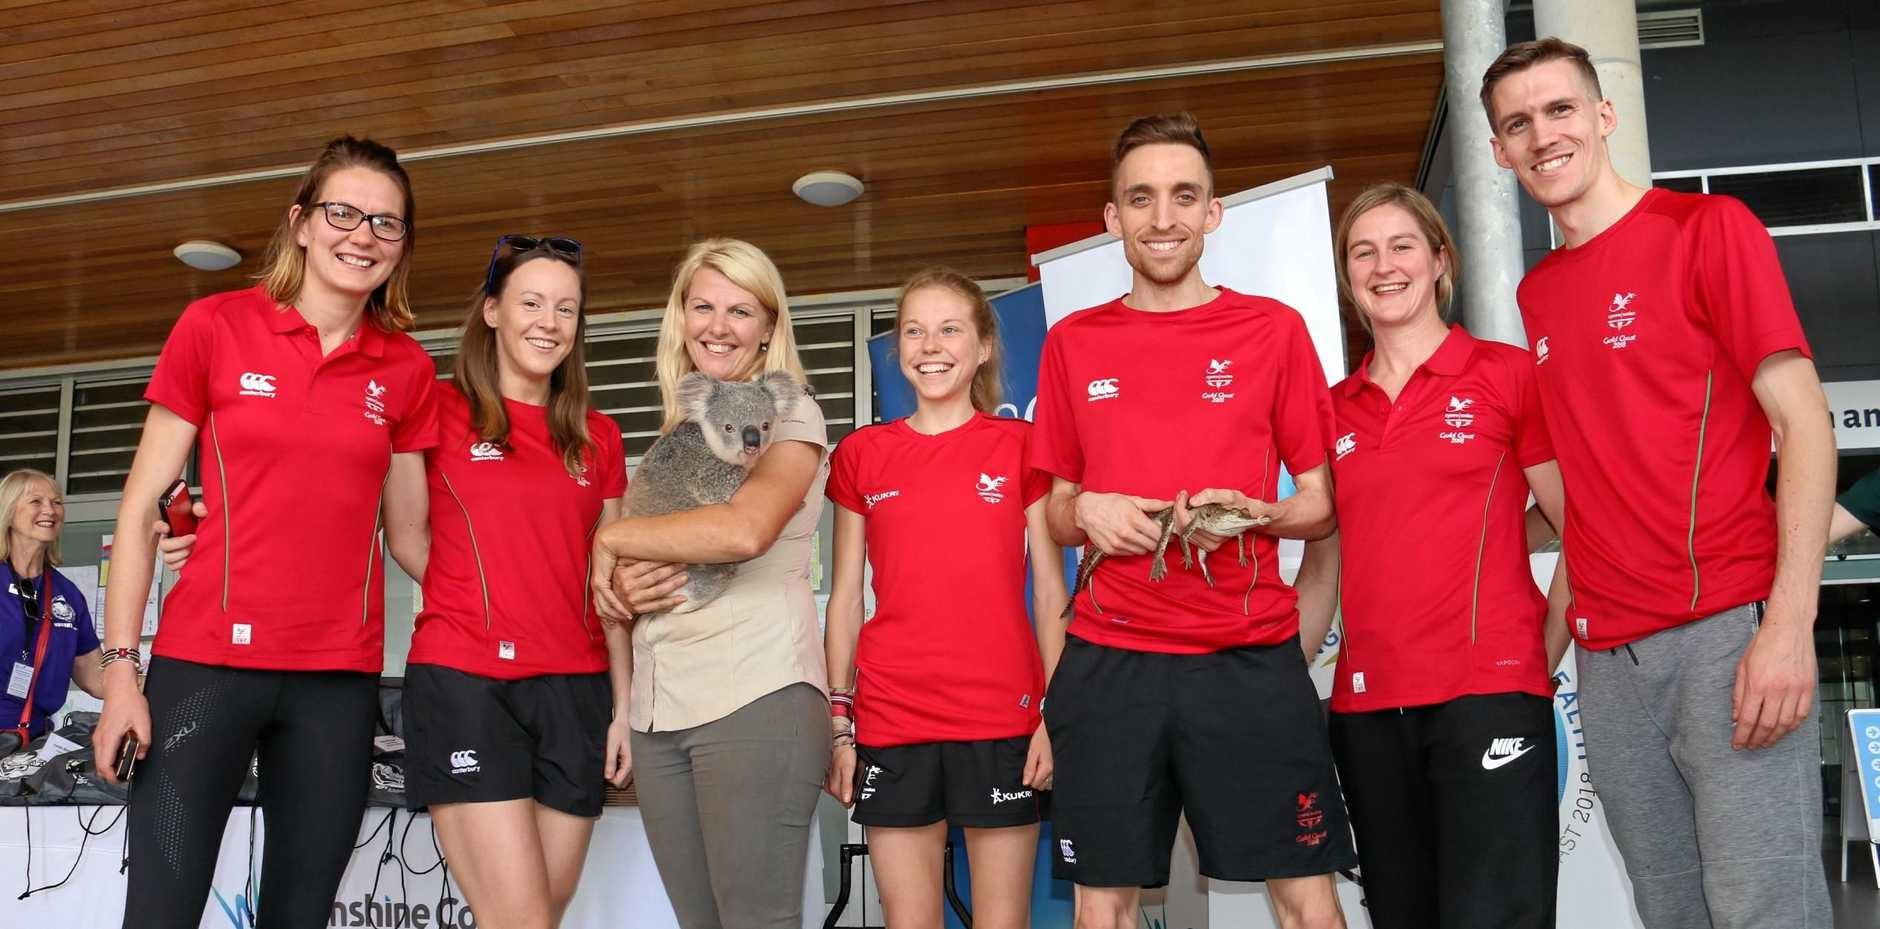 Team Wales officially arrived on the Sunshine Coast on Wednesday to begin preparations for the Commonwealth Games. They were welcomed with a traditional greeting before posing for photos with a Koala and baby crocodile.